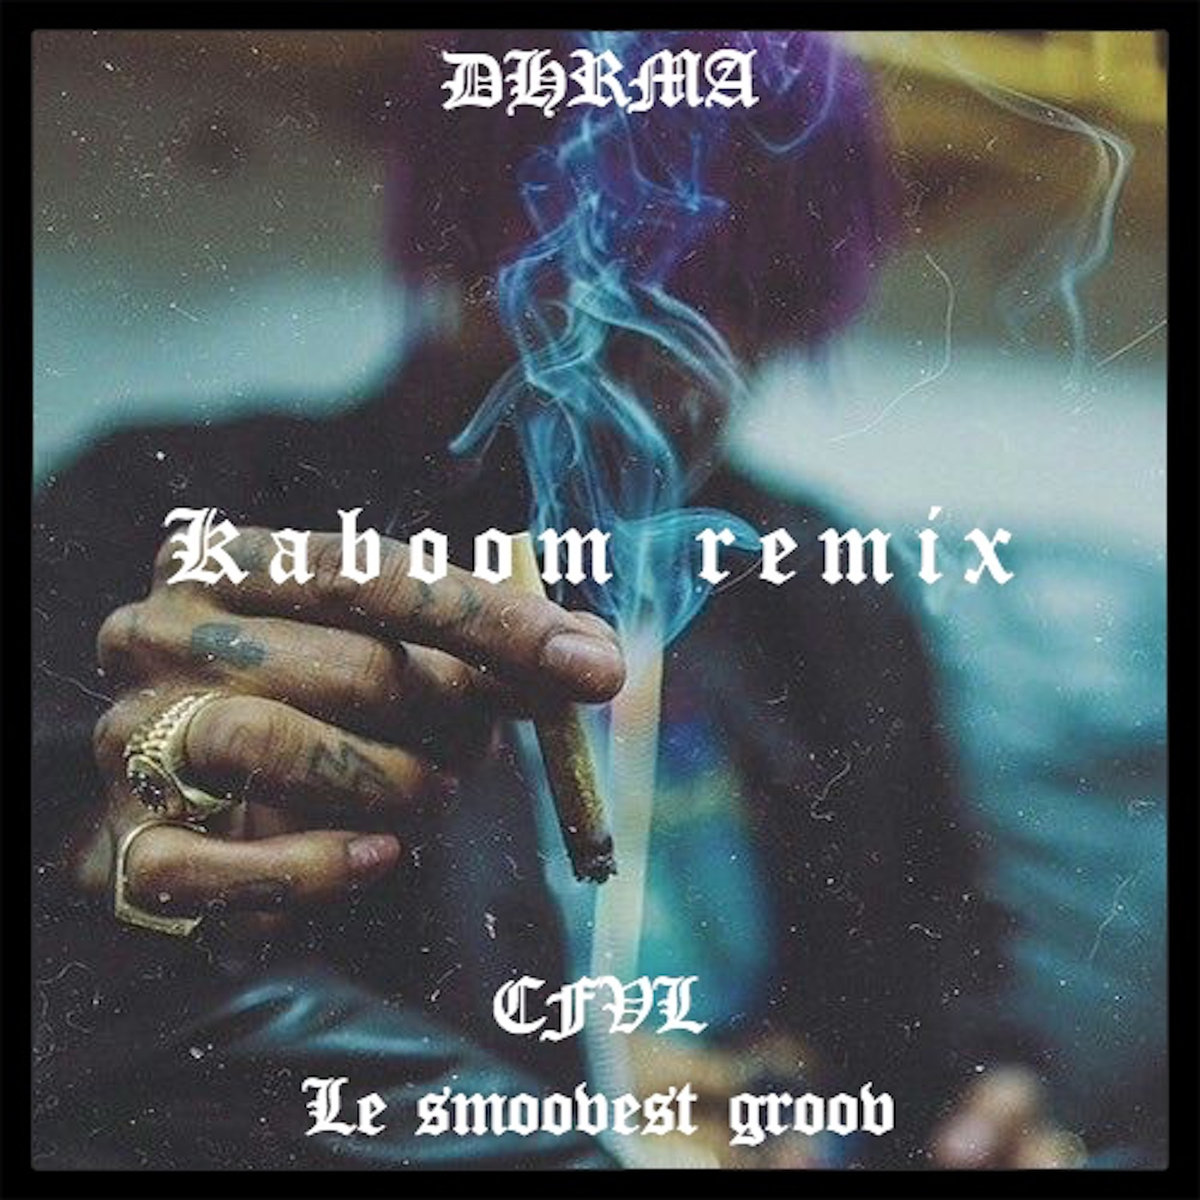 Kaboom remix (shout out 2 CSF)